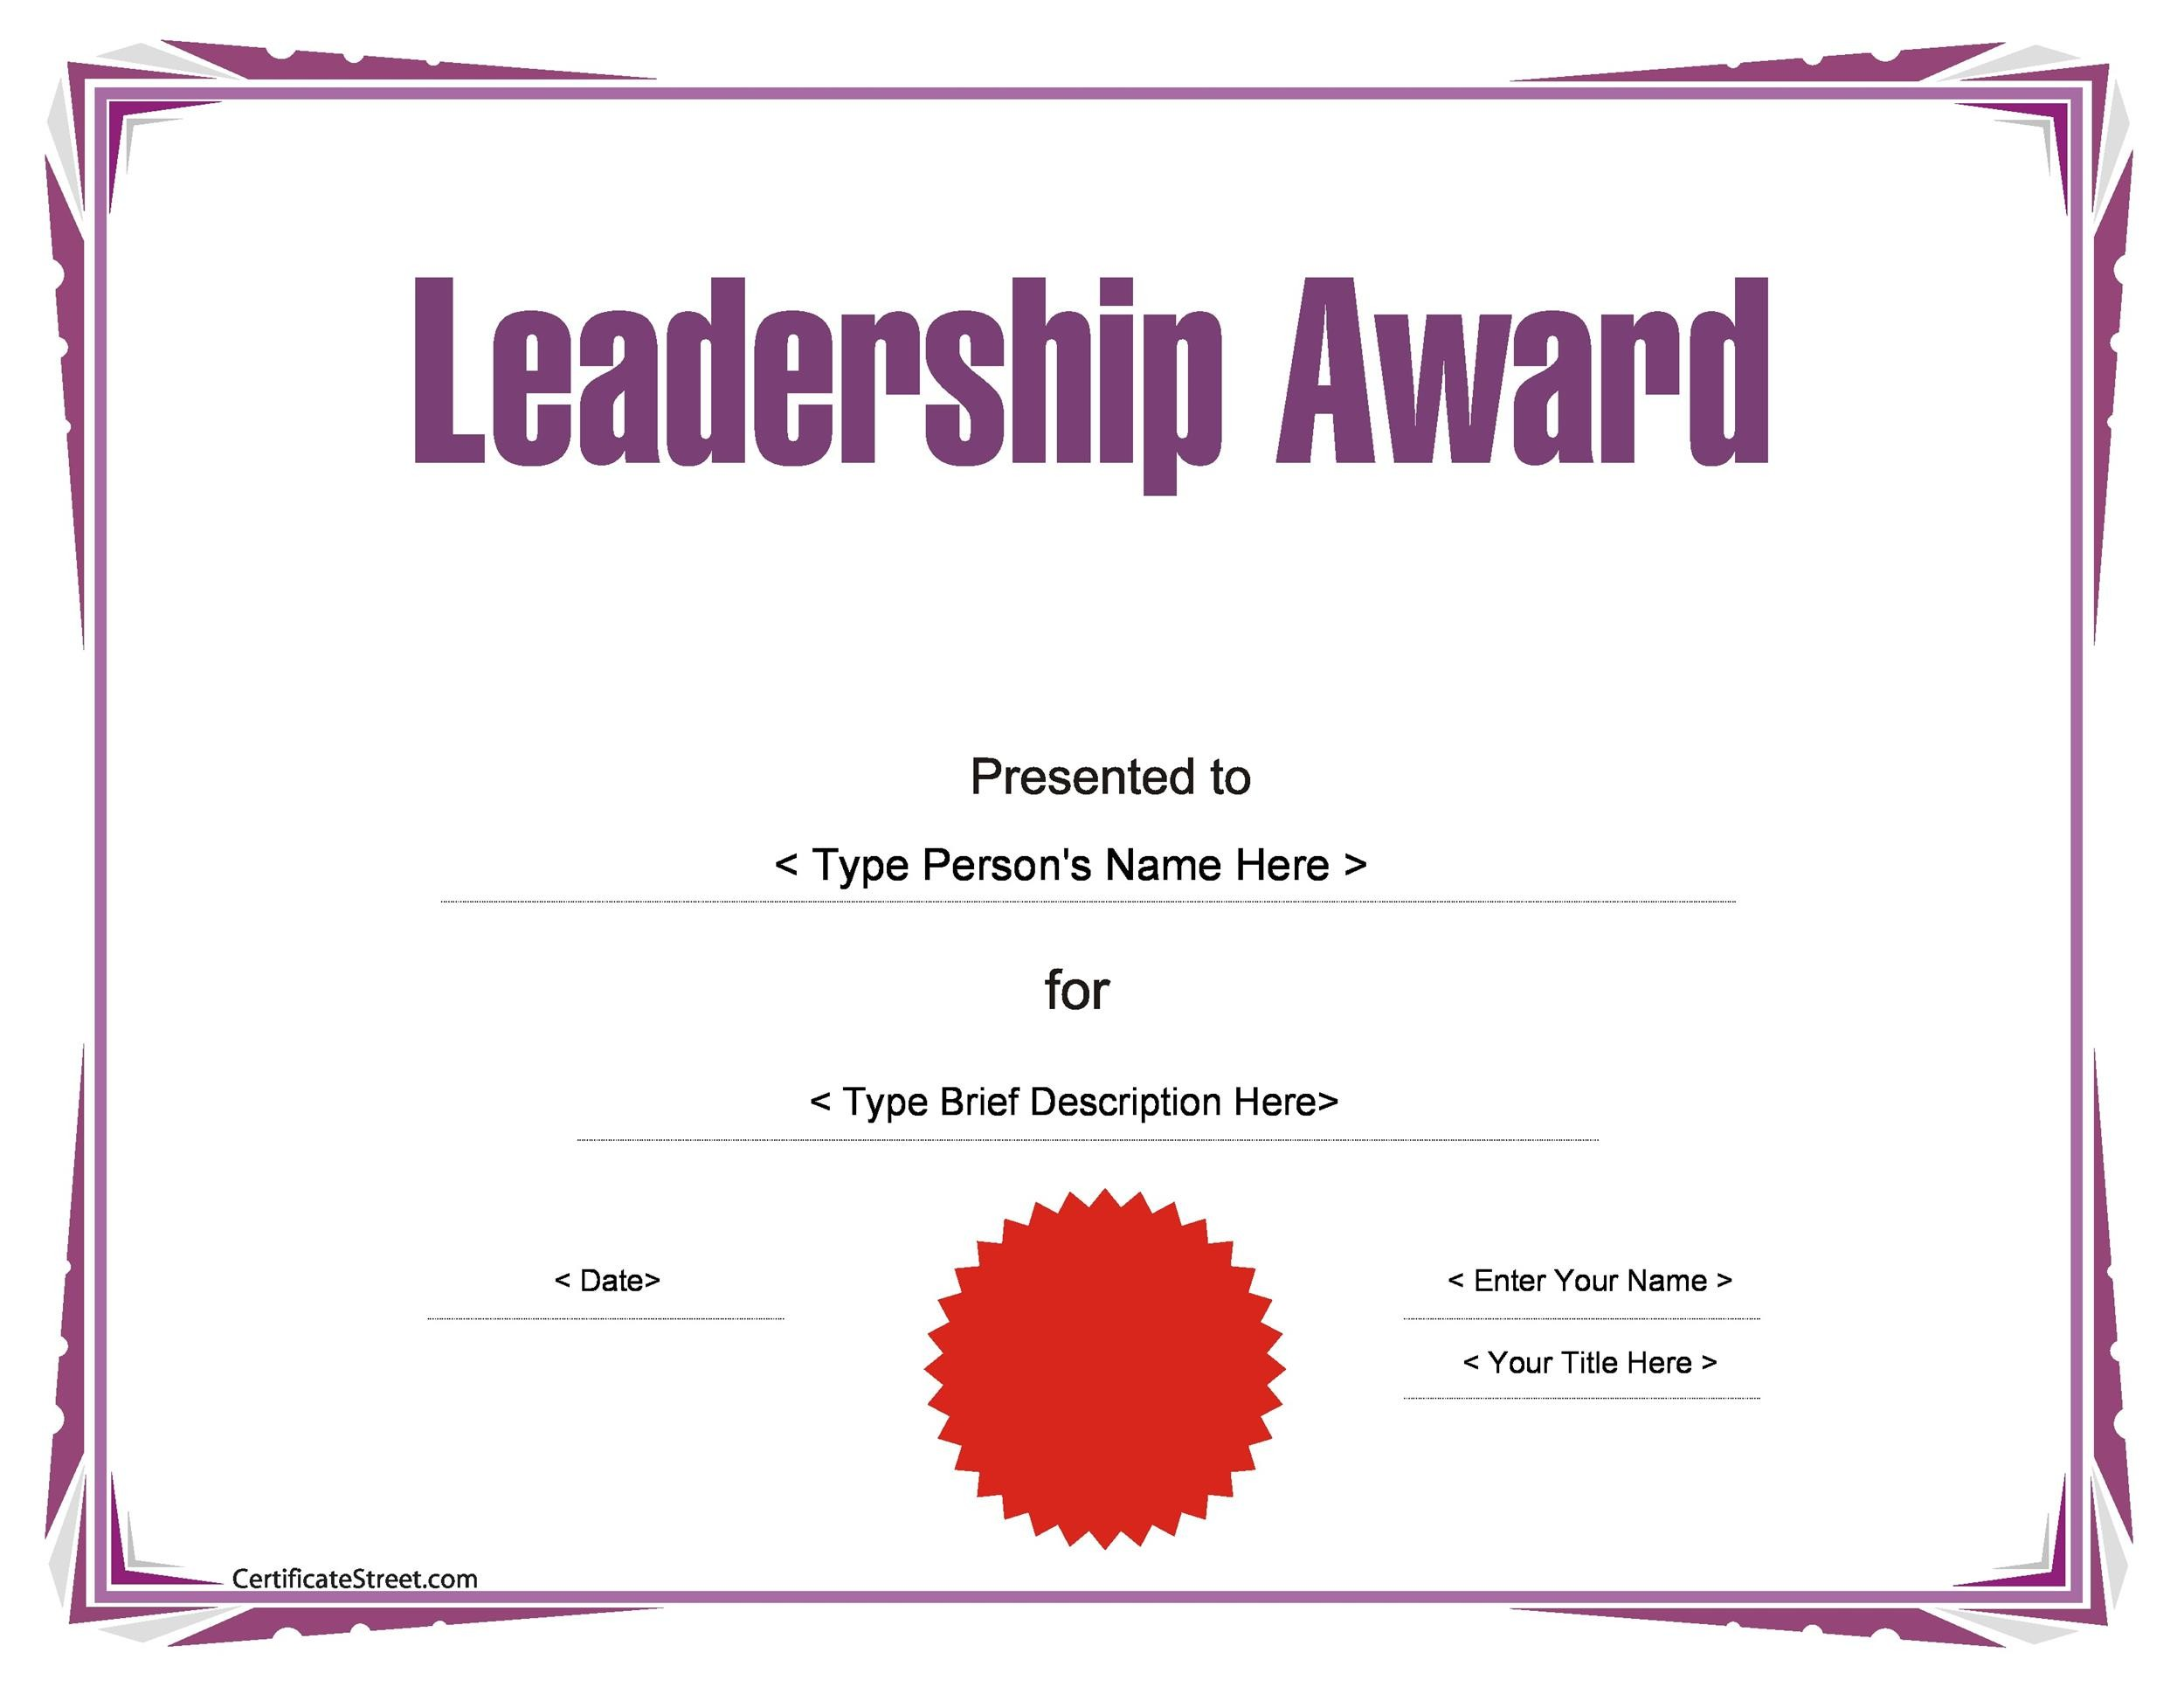 Award Certificate Templates Running Award Track And Field – Award Certificate